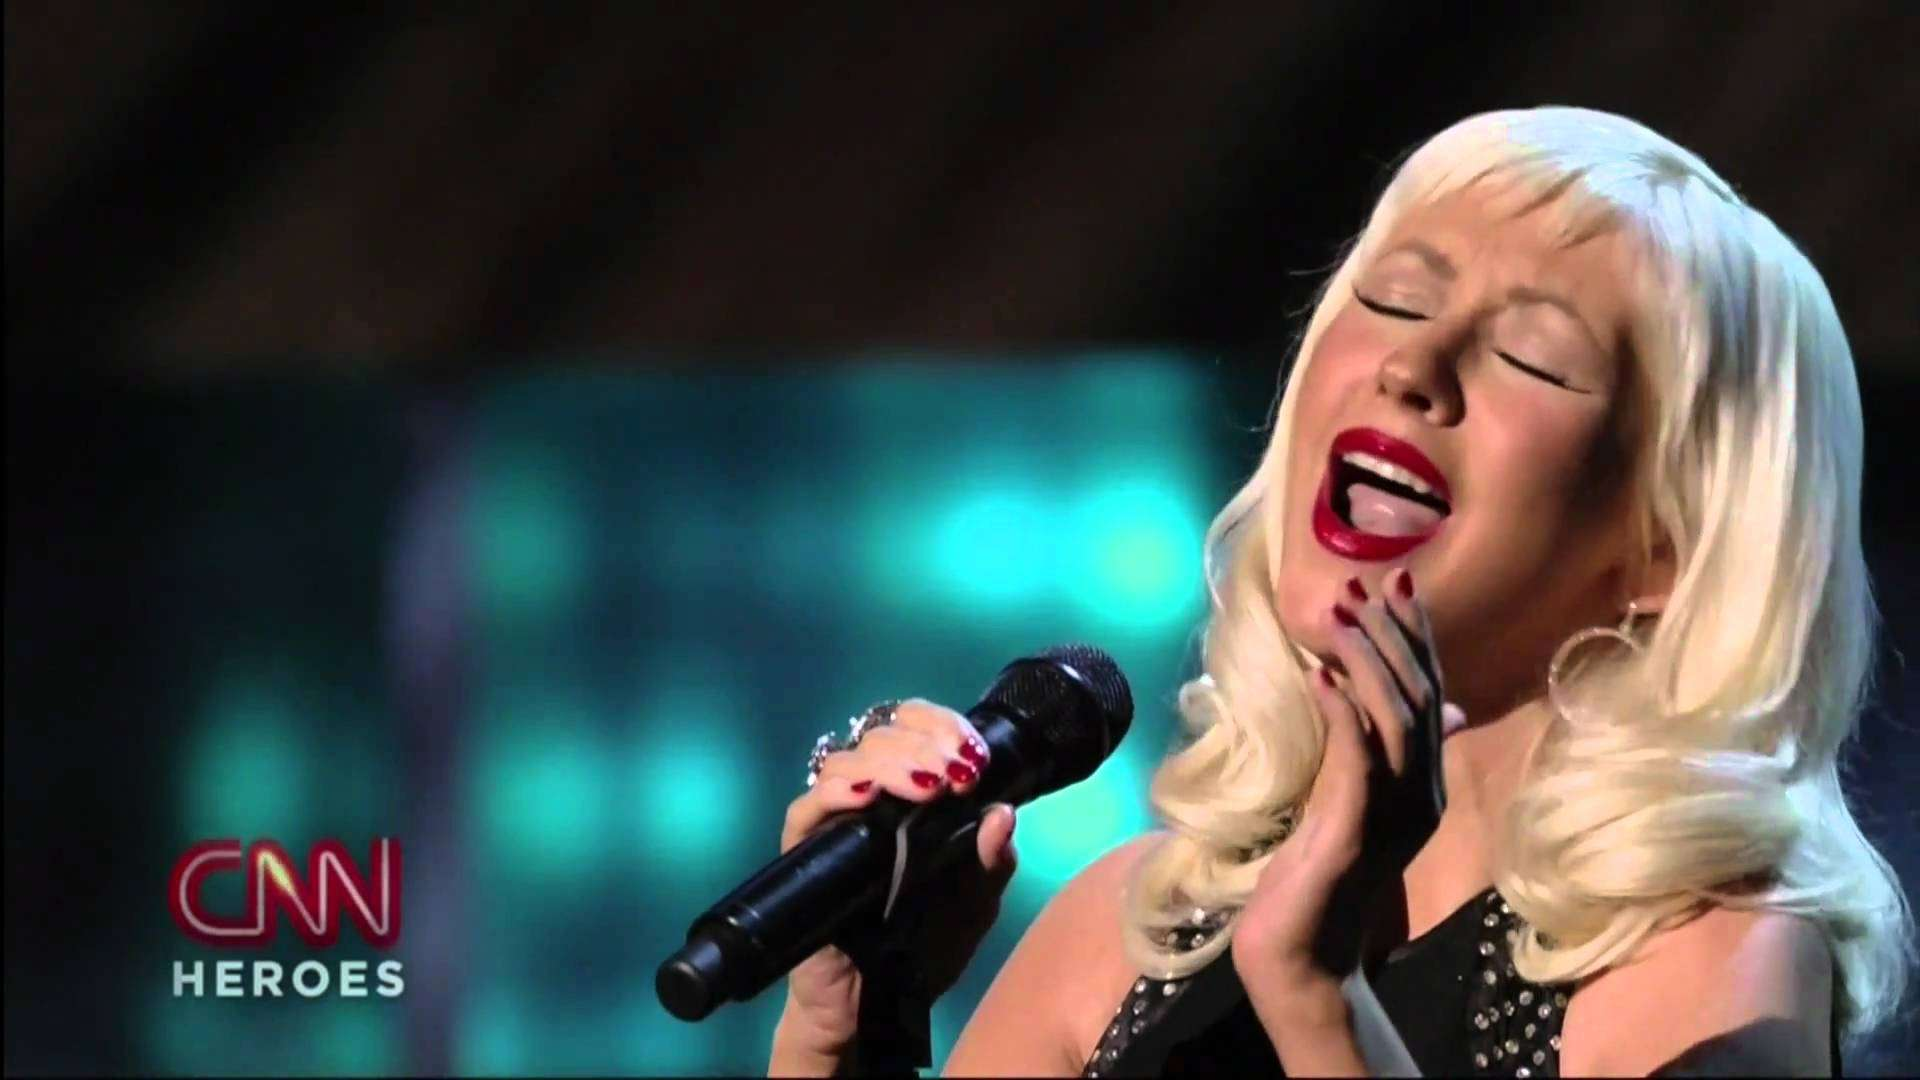 Christina Aguilera - Beautiful [Live] (CNN Heroes) High Definition - YouTube